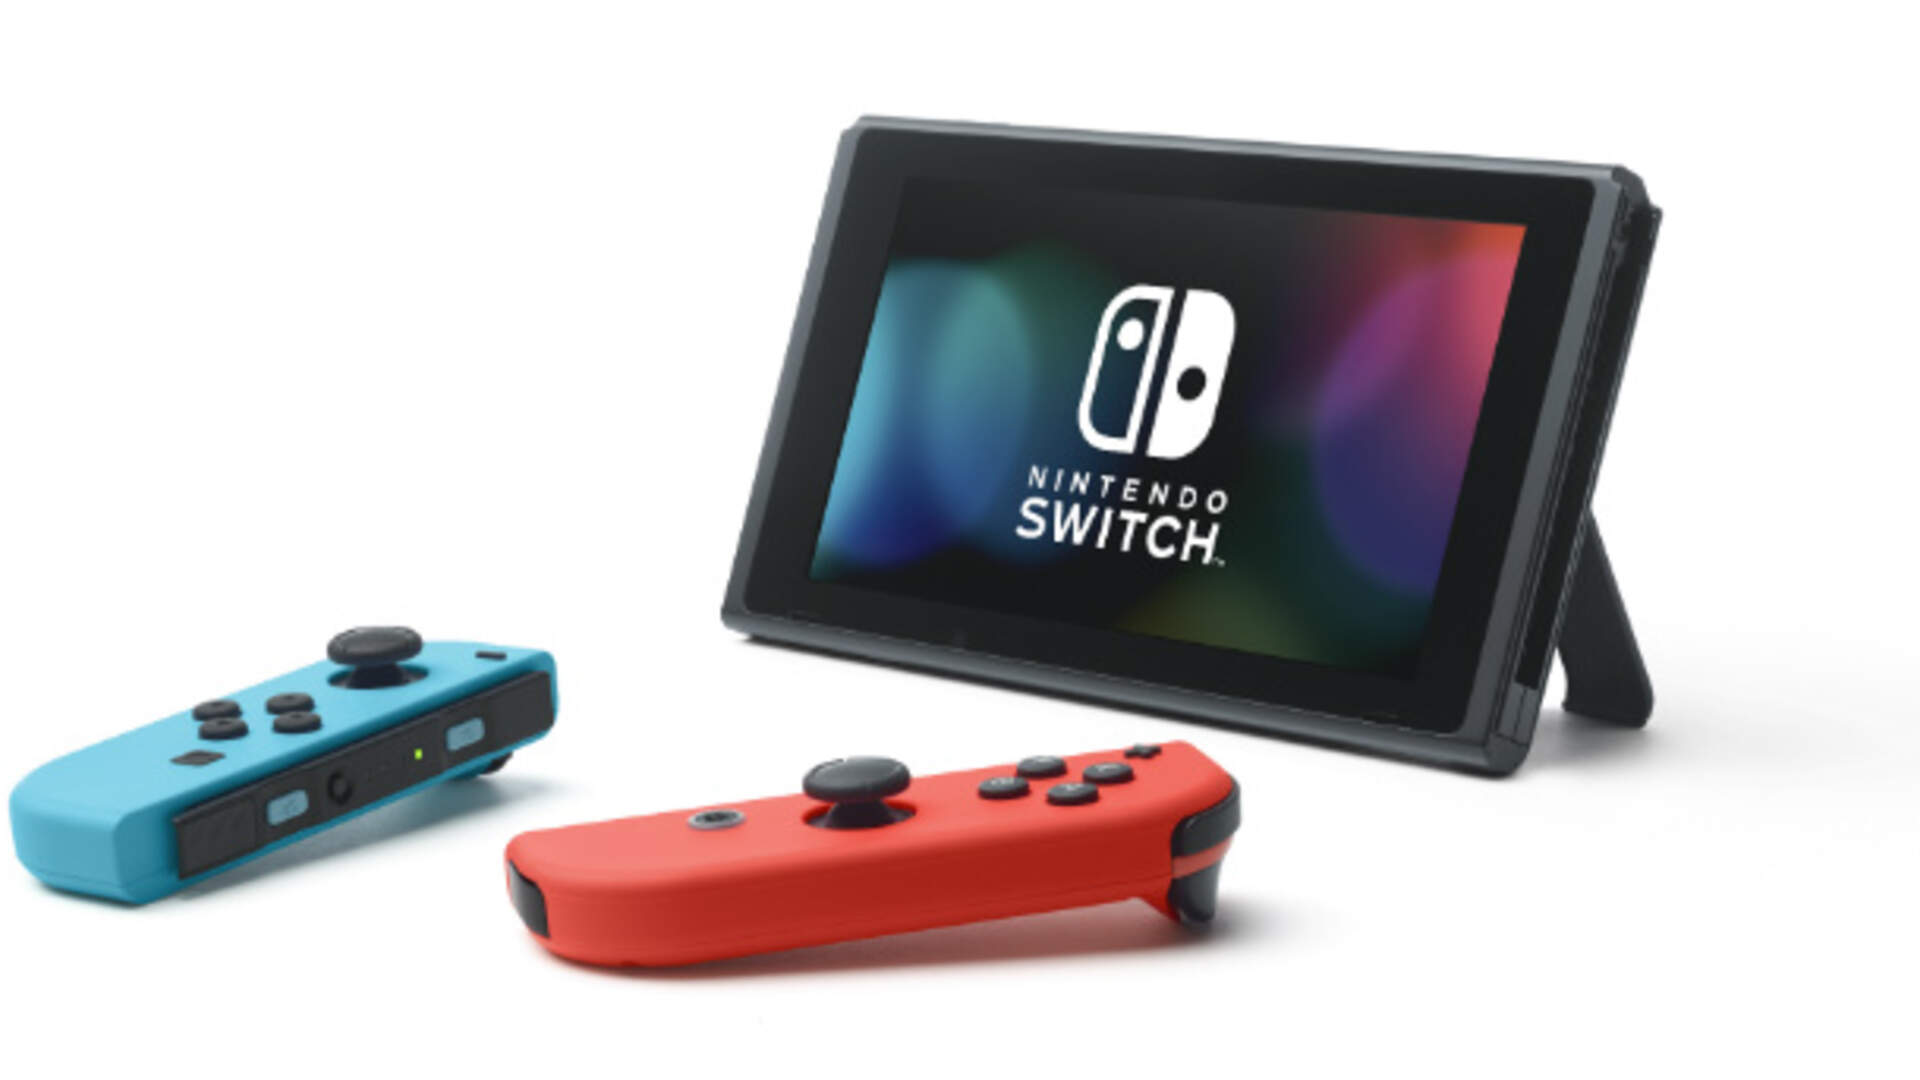 Nintendo Switch Uses Friend Codes To Add Friends